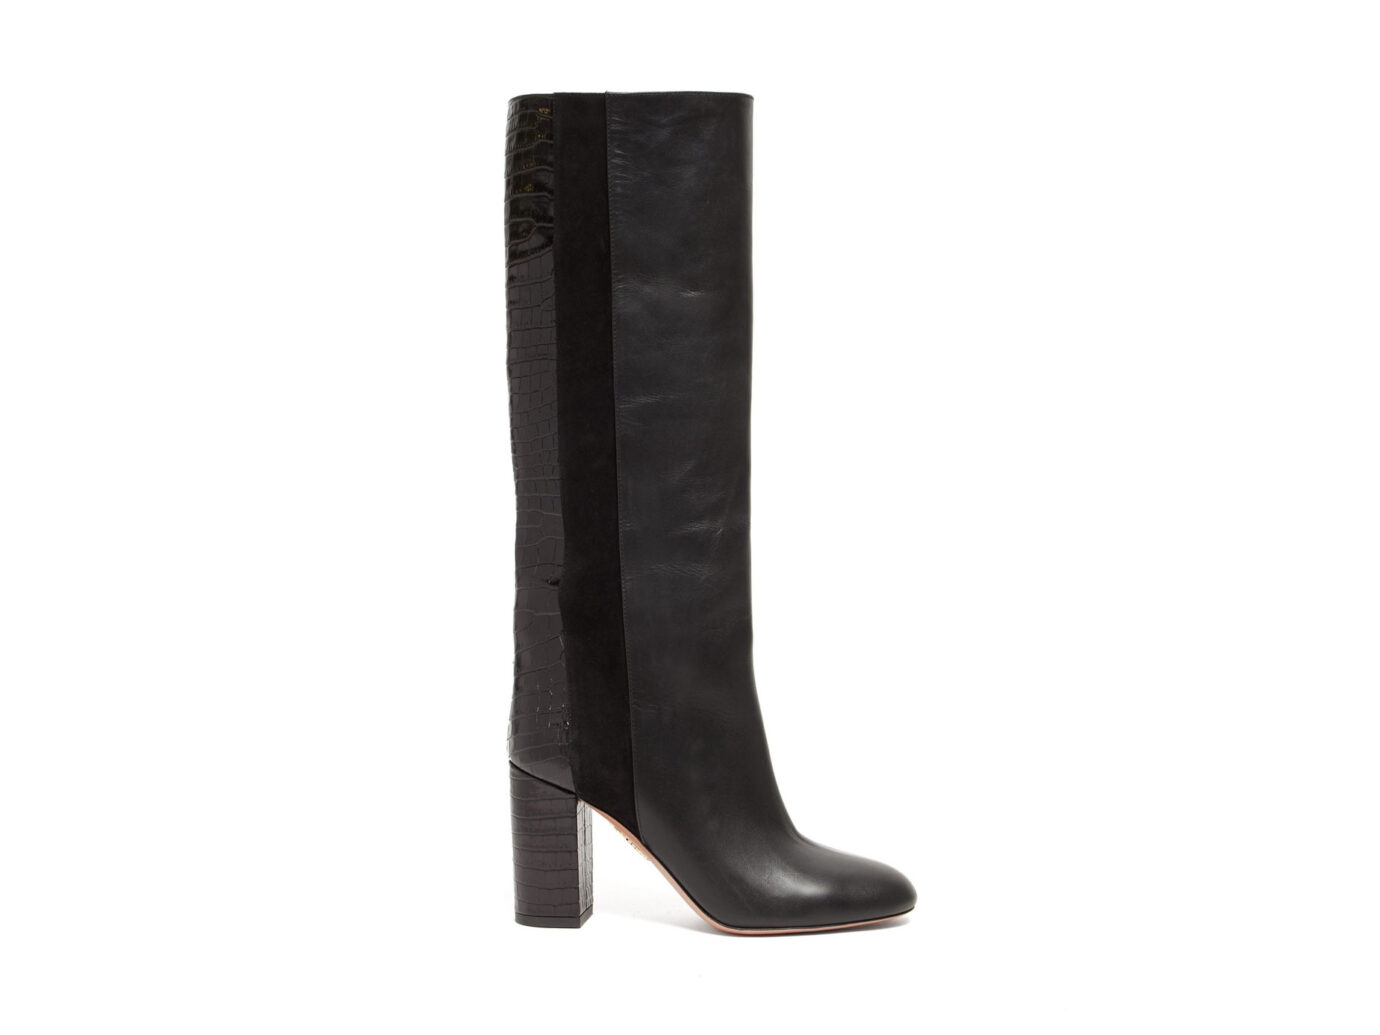 Aquazzura Eaton 85 croc-embossed knee-high leather boots